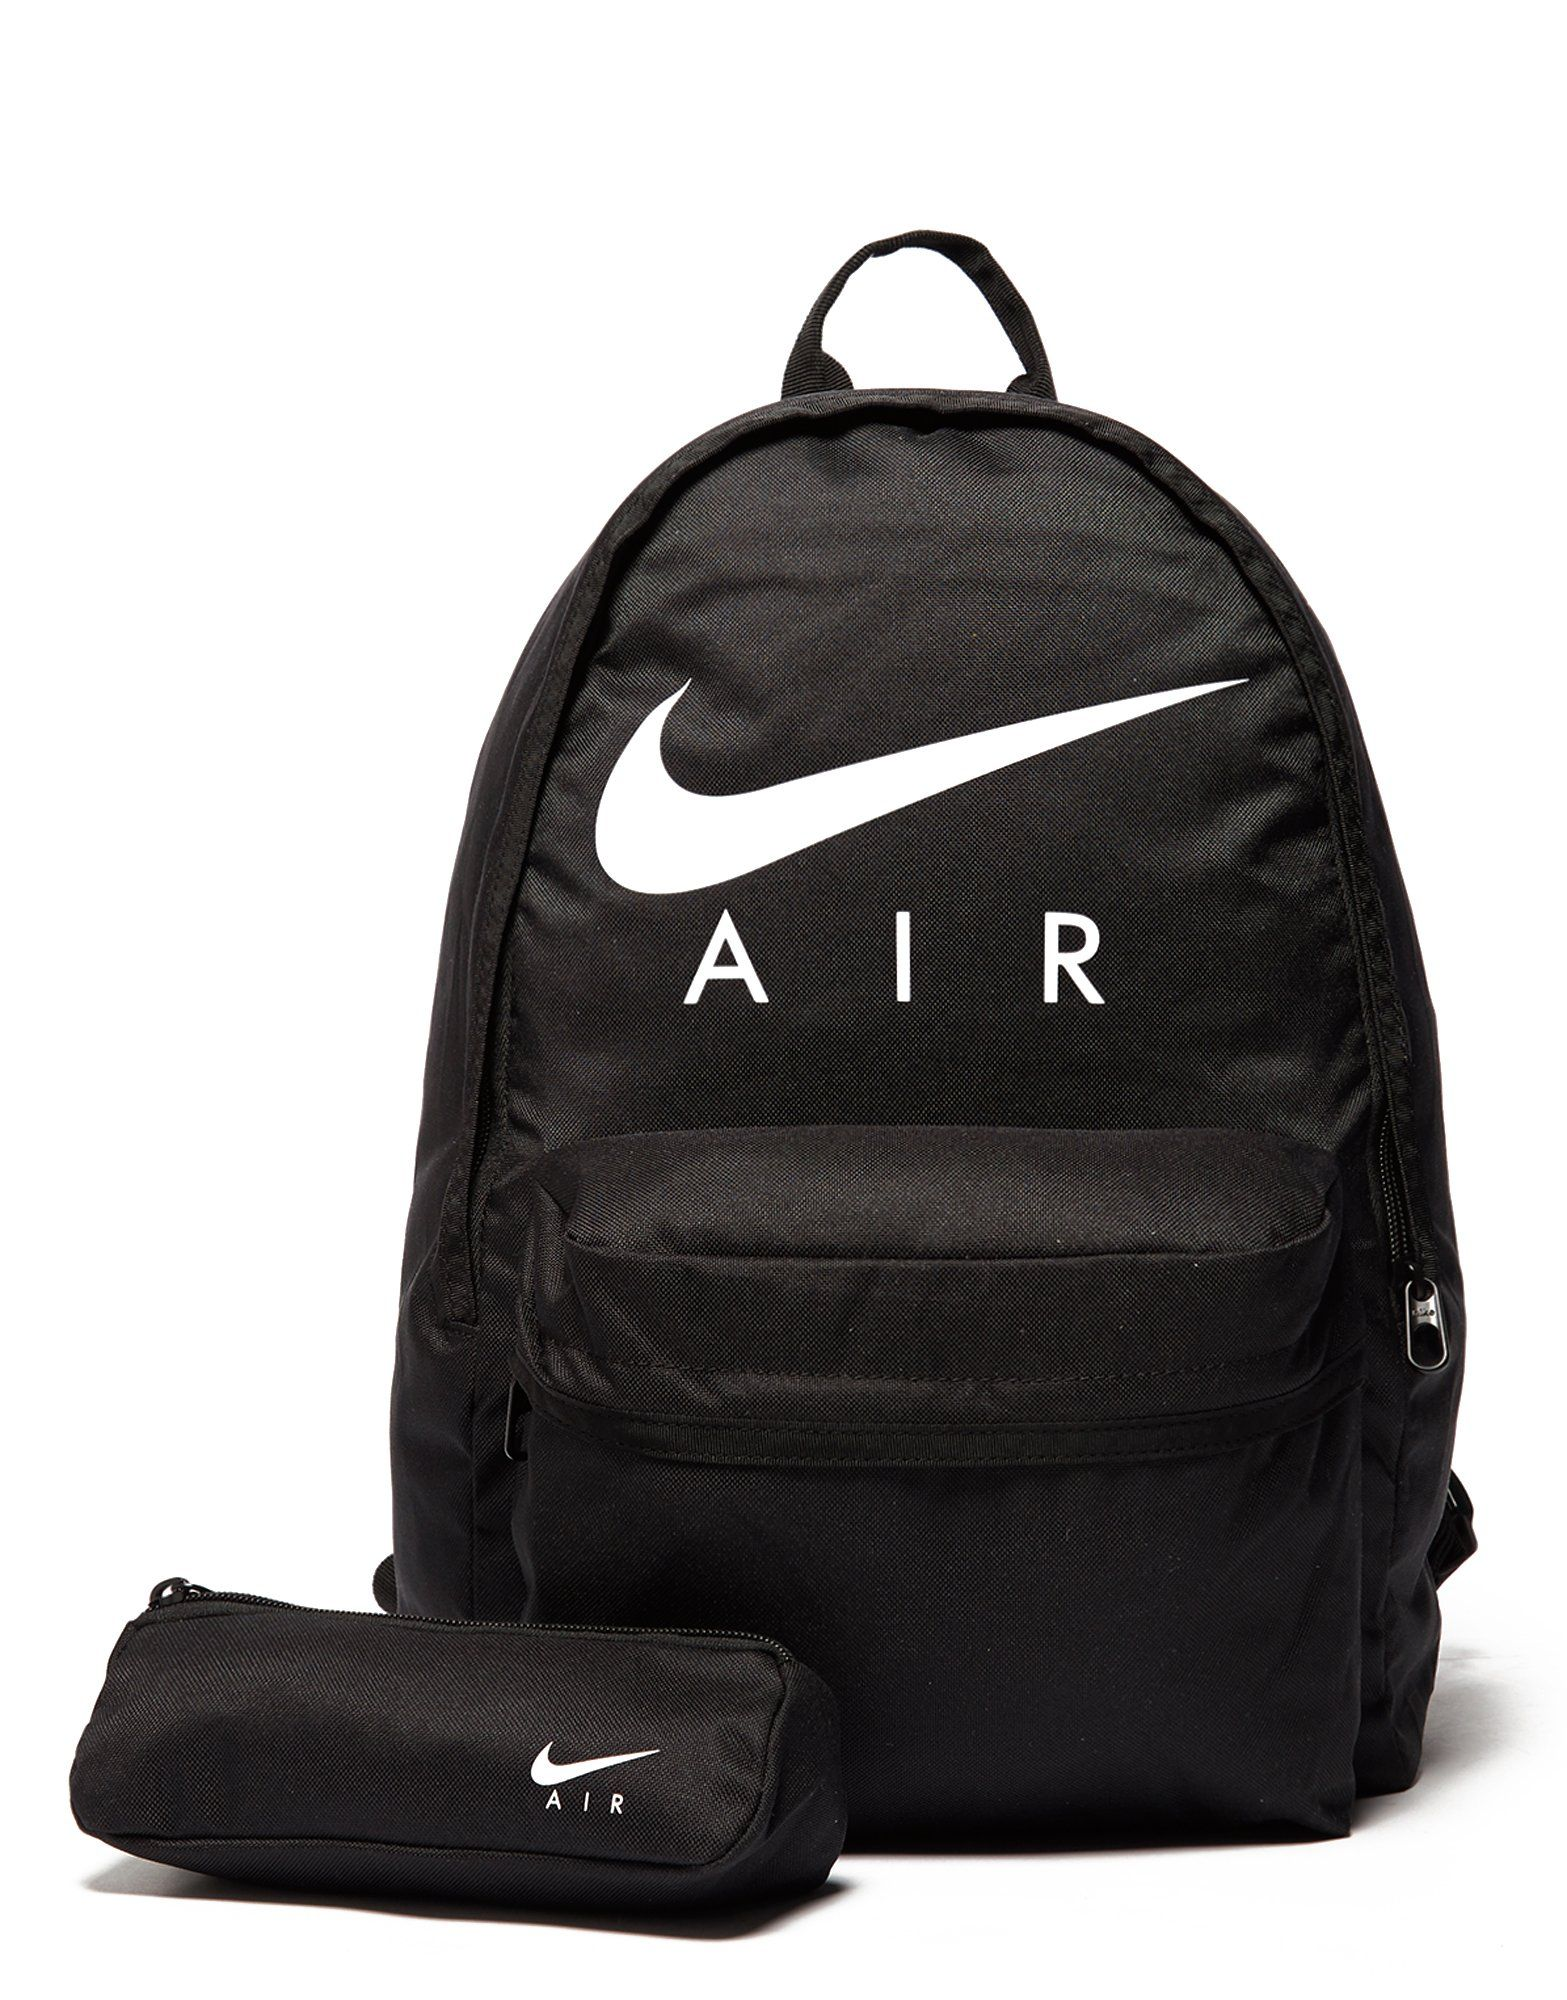 Mens gloves sports direct - Nike Halfday Backpack